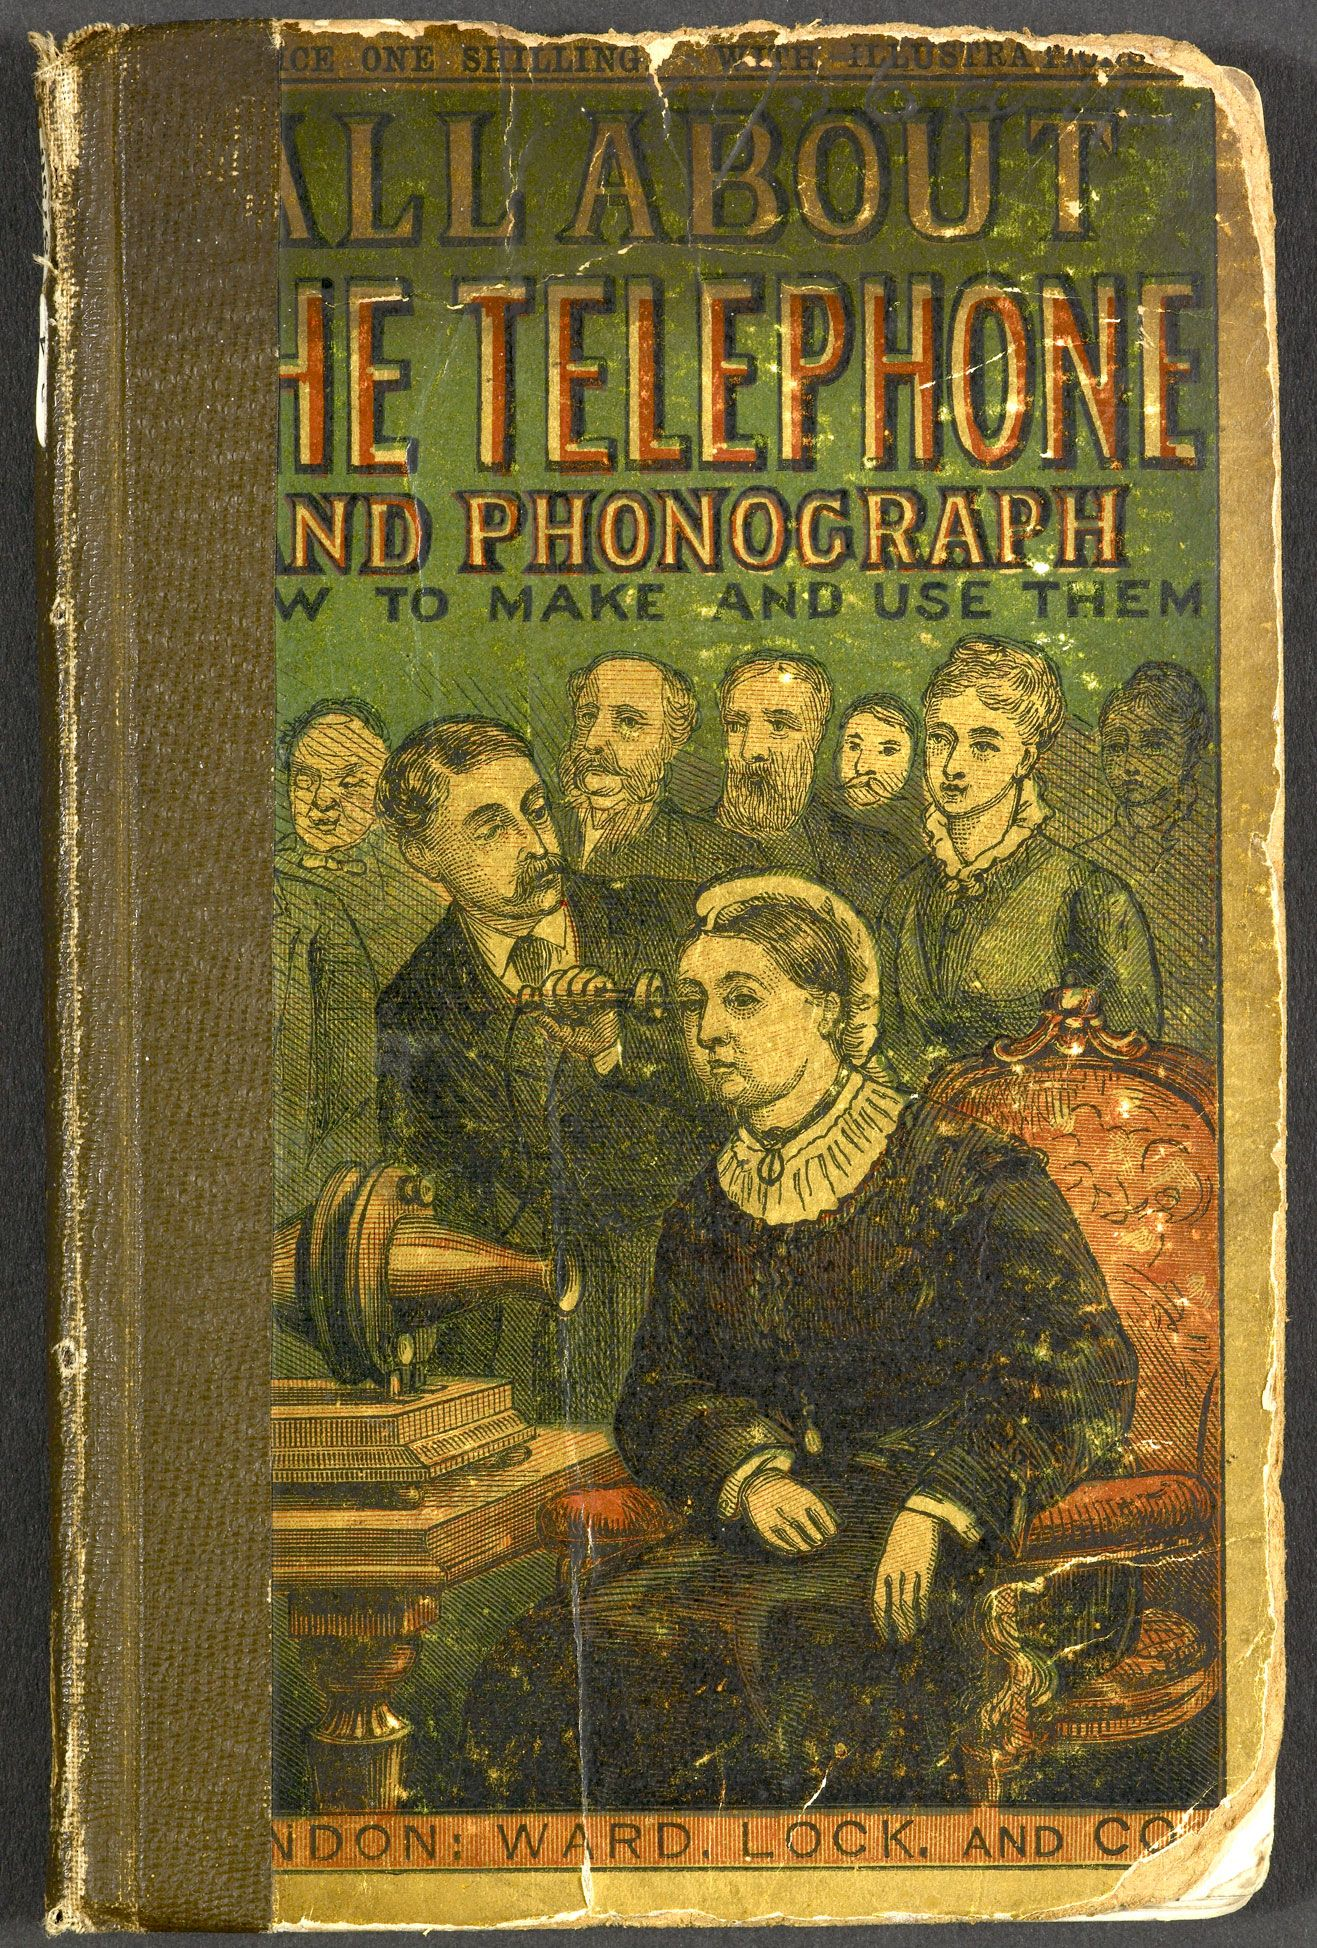 All about the telephone and phonograph phonograph